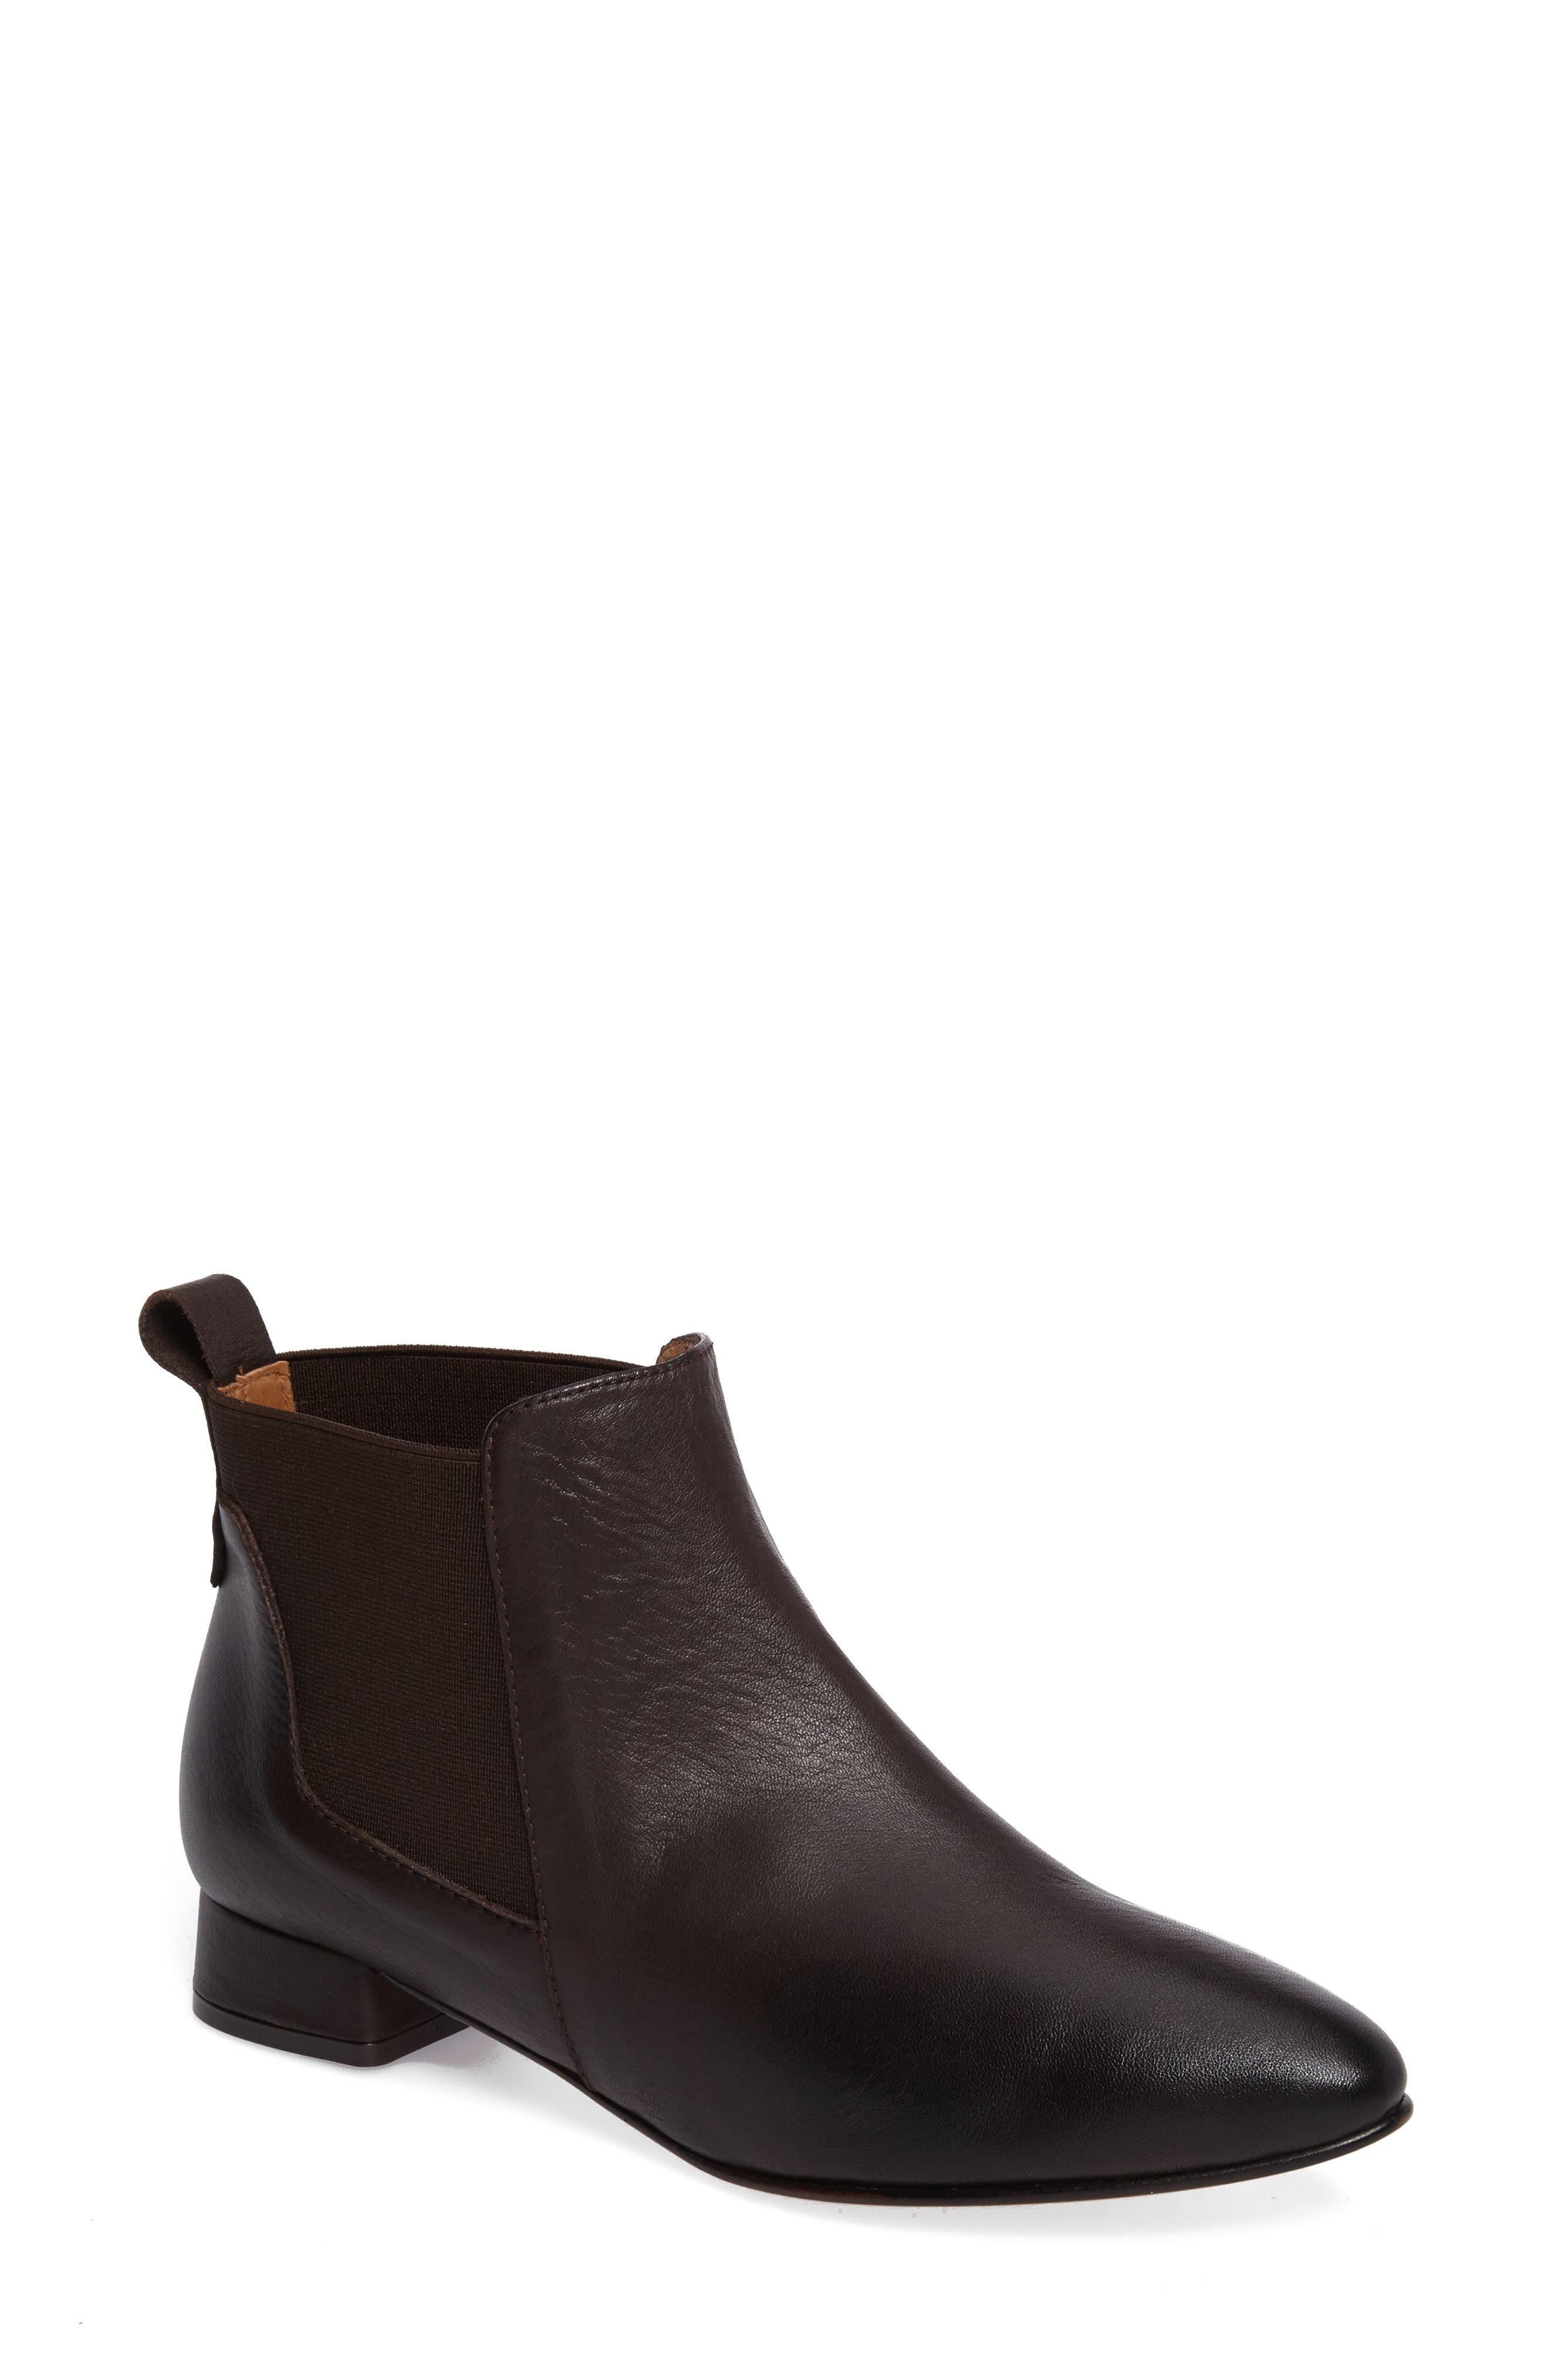 Newbury Bootie,                         Main,                         color, Chocolate Leather